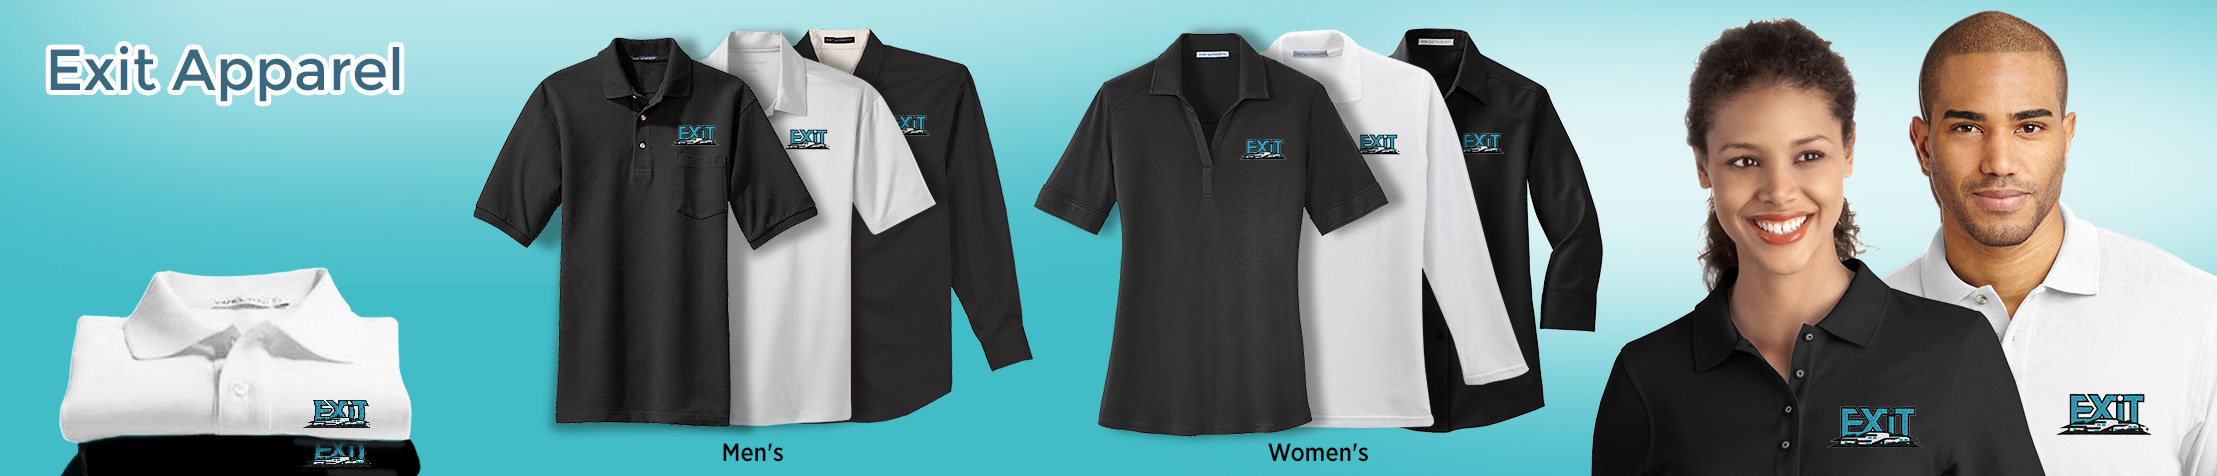 EXIT Realty Apparel